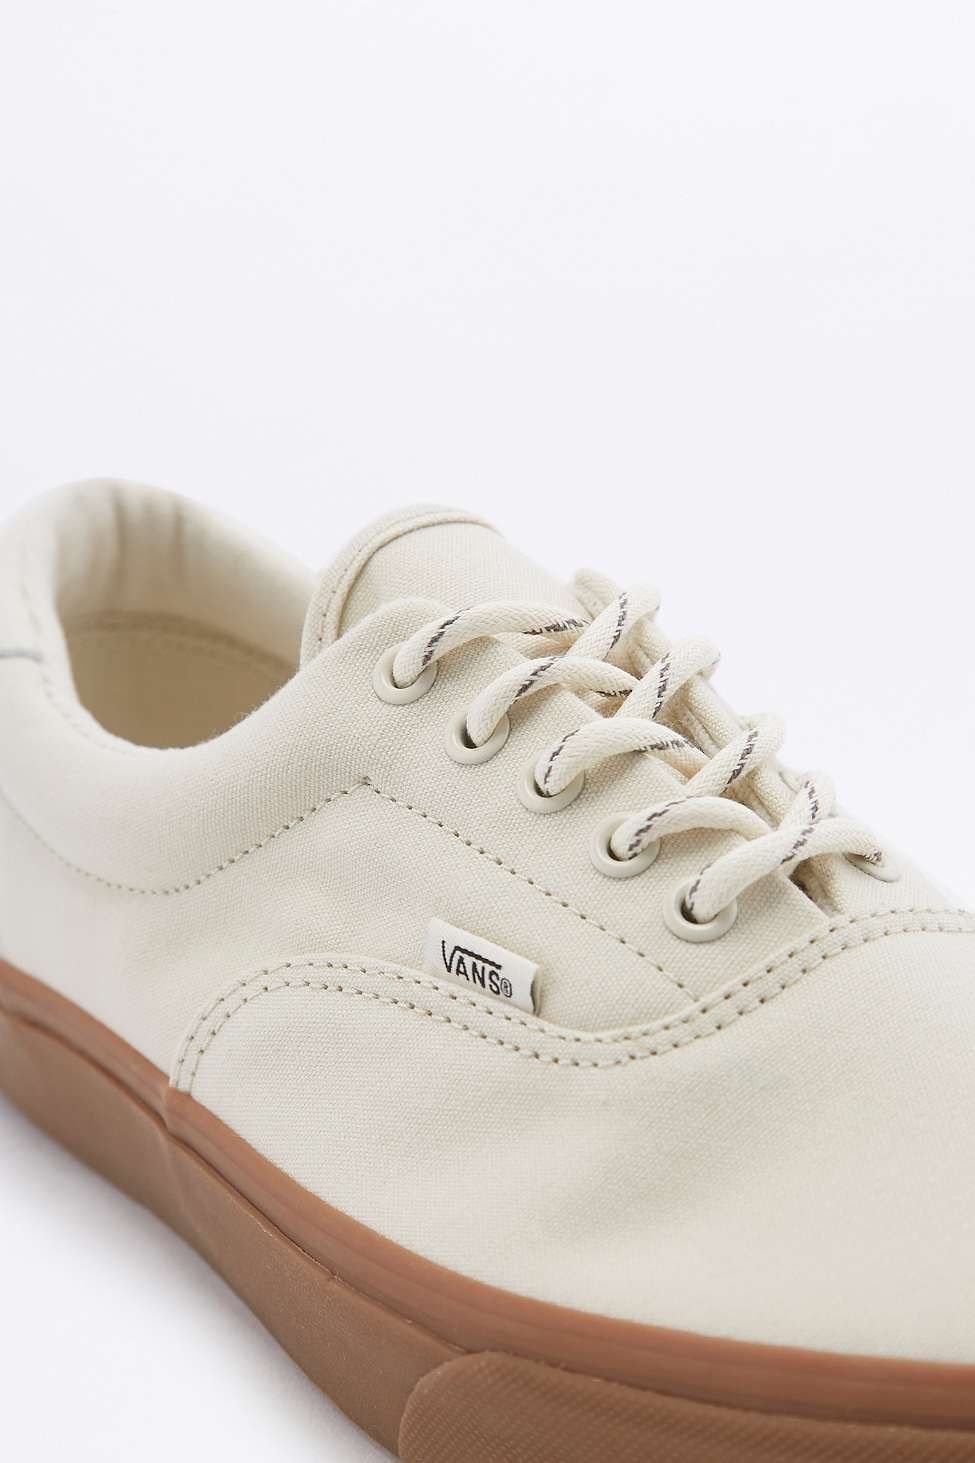 cc65f9f126 Vans Era 59 Hiking White Gum Sole Trainers - Urban Outfitters